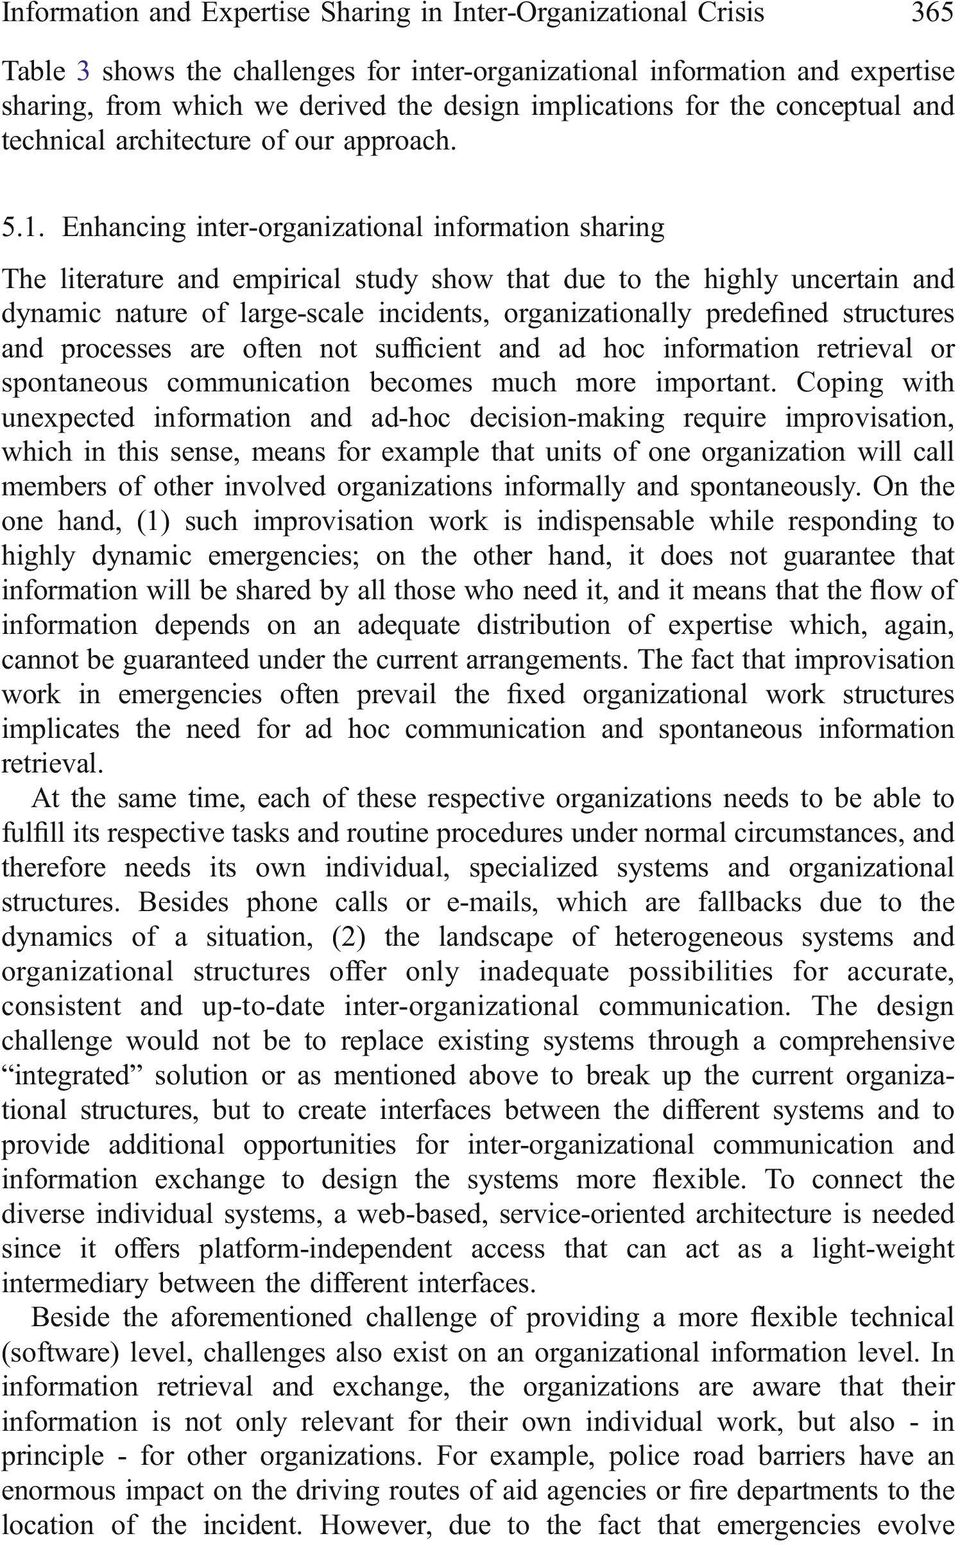 Enhancing inter-organizational information sharing The literature and empirical study show that due to the highly uncertain and dynamic nature of large-scale incidents, organizationally predefined